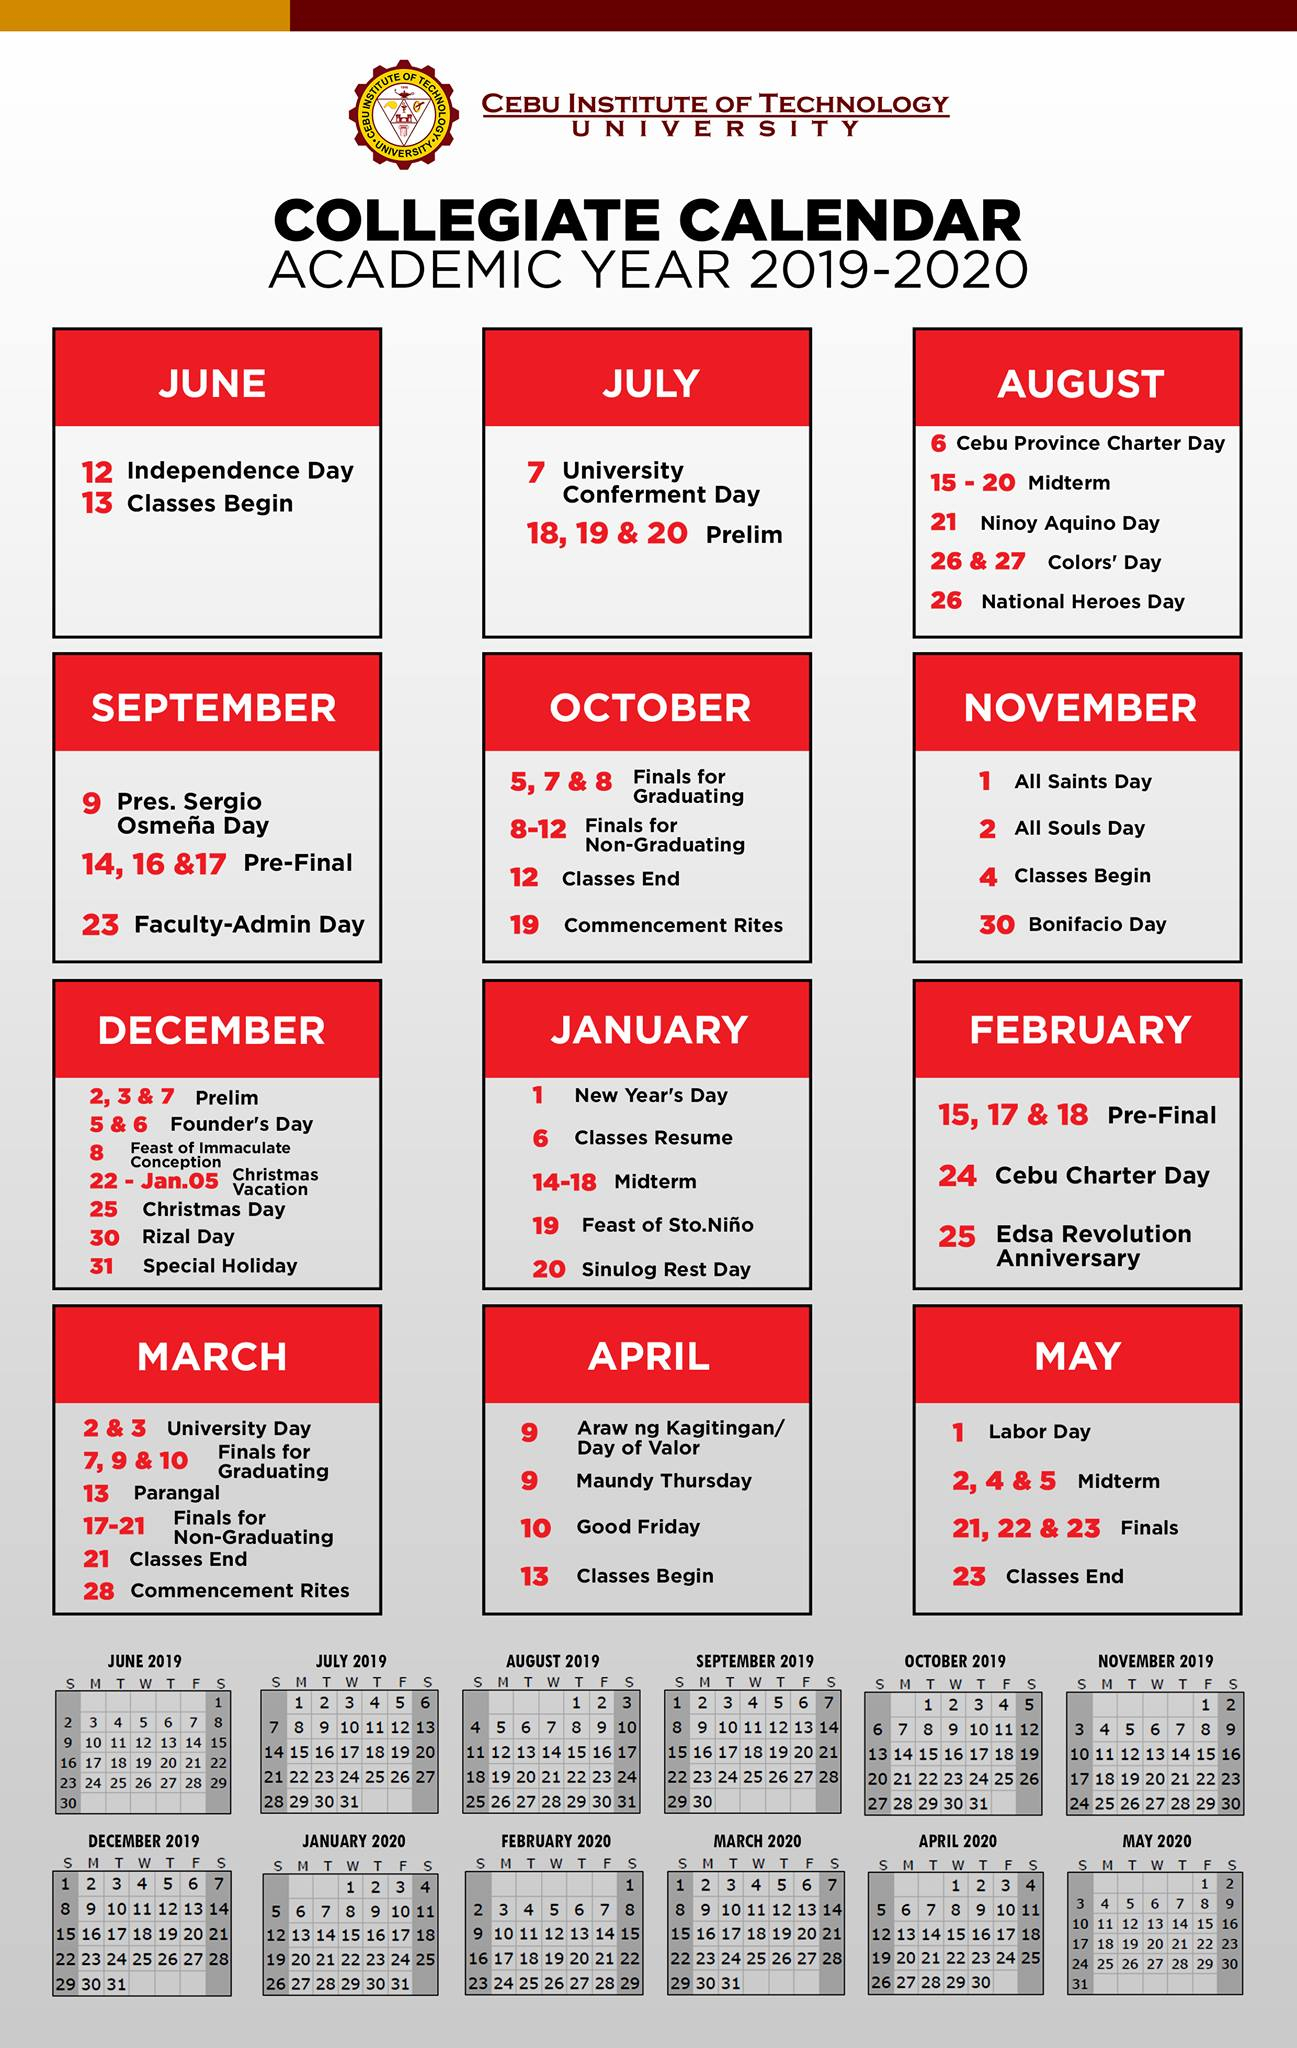 Collegiate Calendar For The Academic Year 2019 – 2020 | Cebu